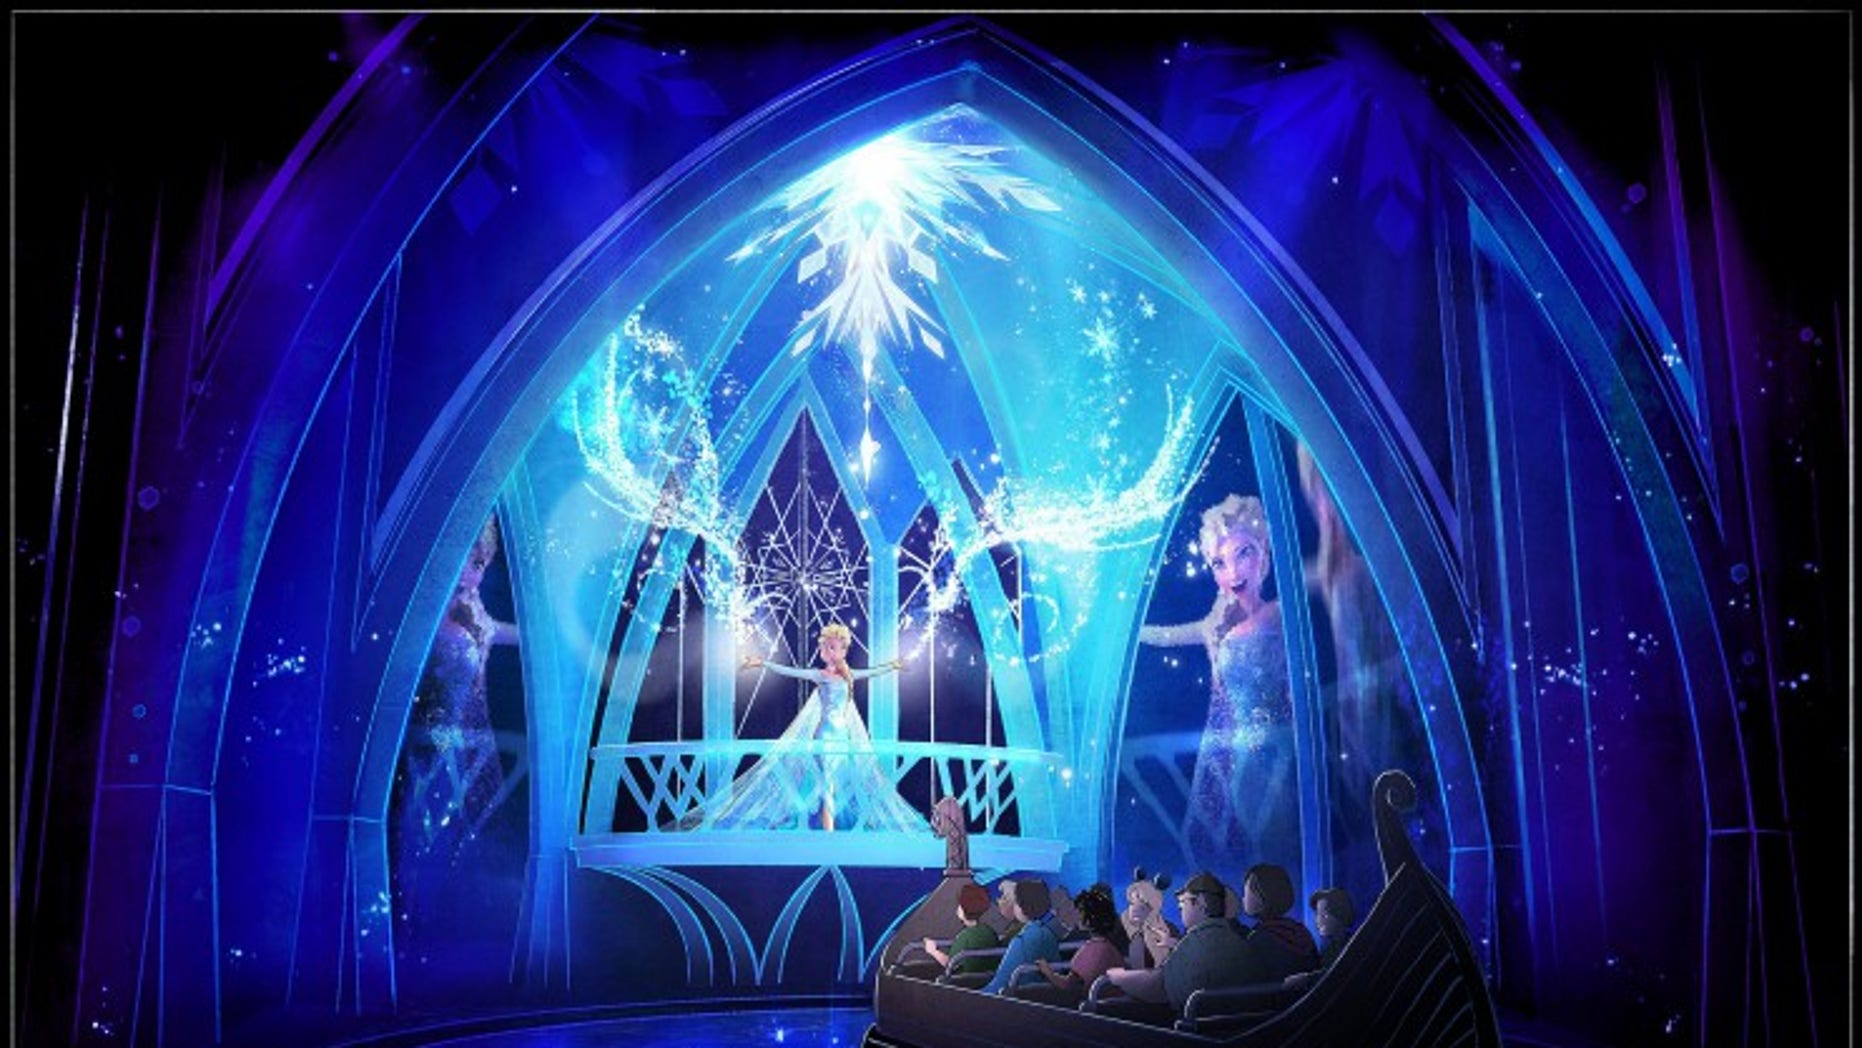 """The """"Frozen Ever After"""" ride will debut at Epcot early 2016."""